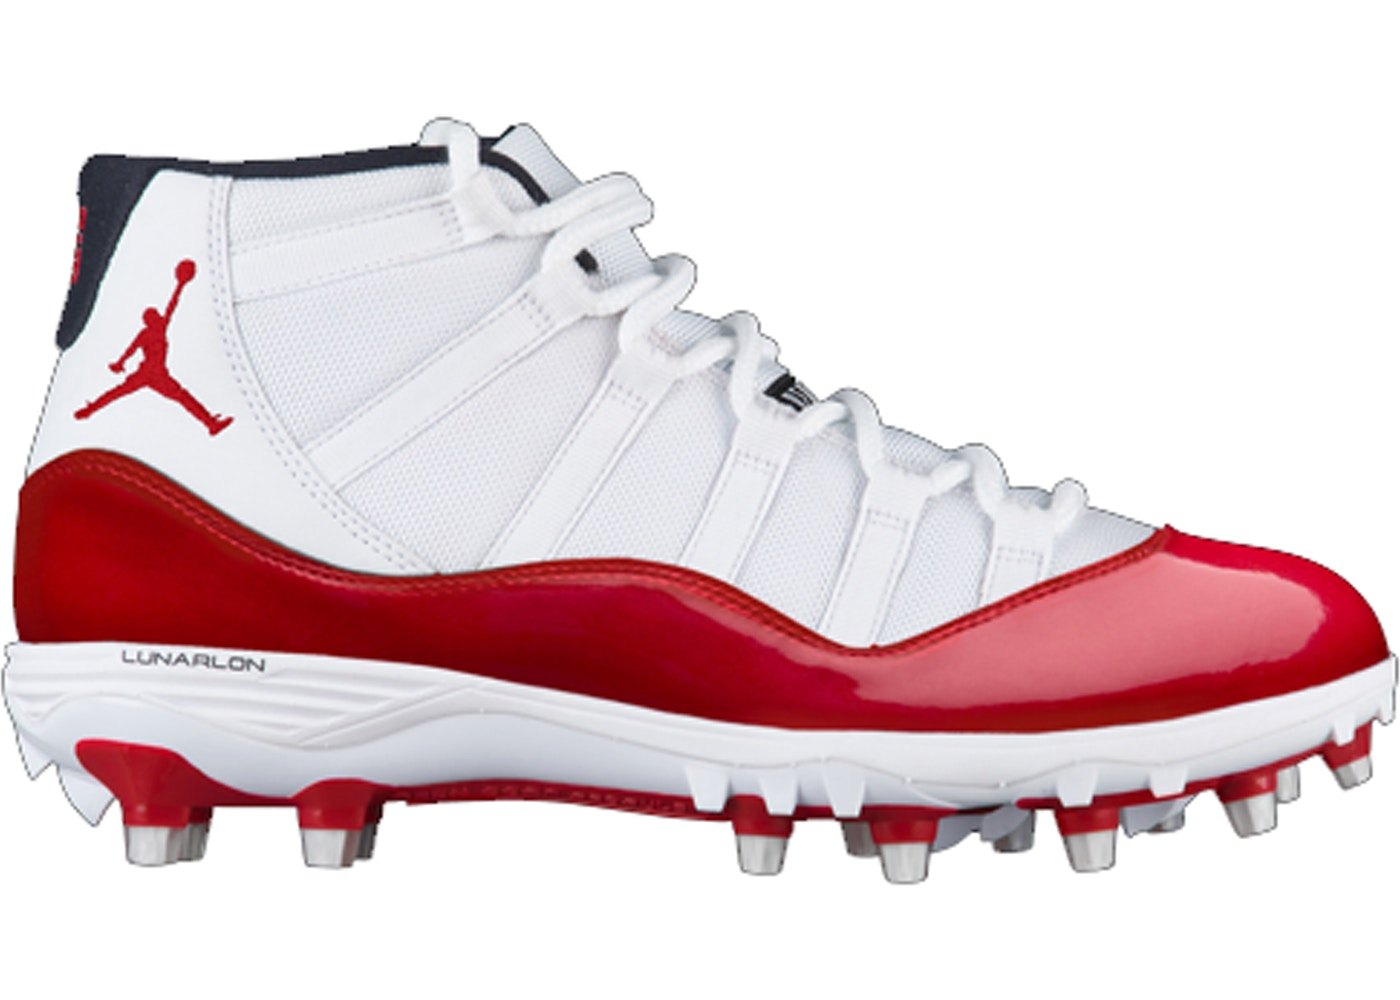 separation shoes a8560 eb9bd Jordan 11 Retro Cleat White Red